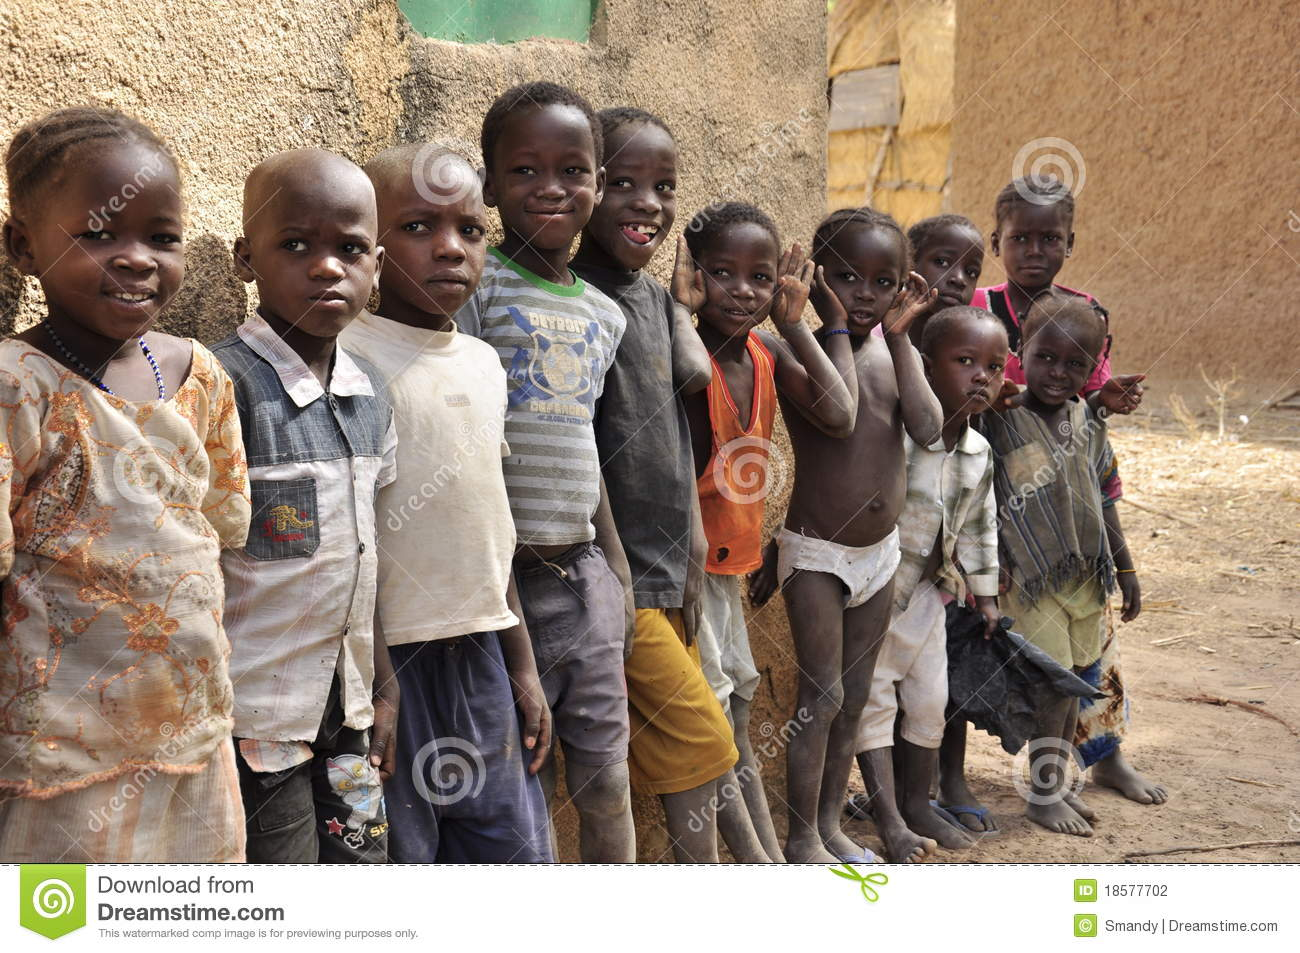 Group of very cute black children refugees west africa